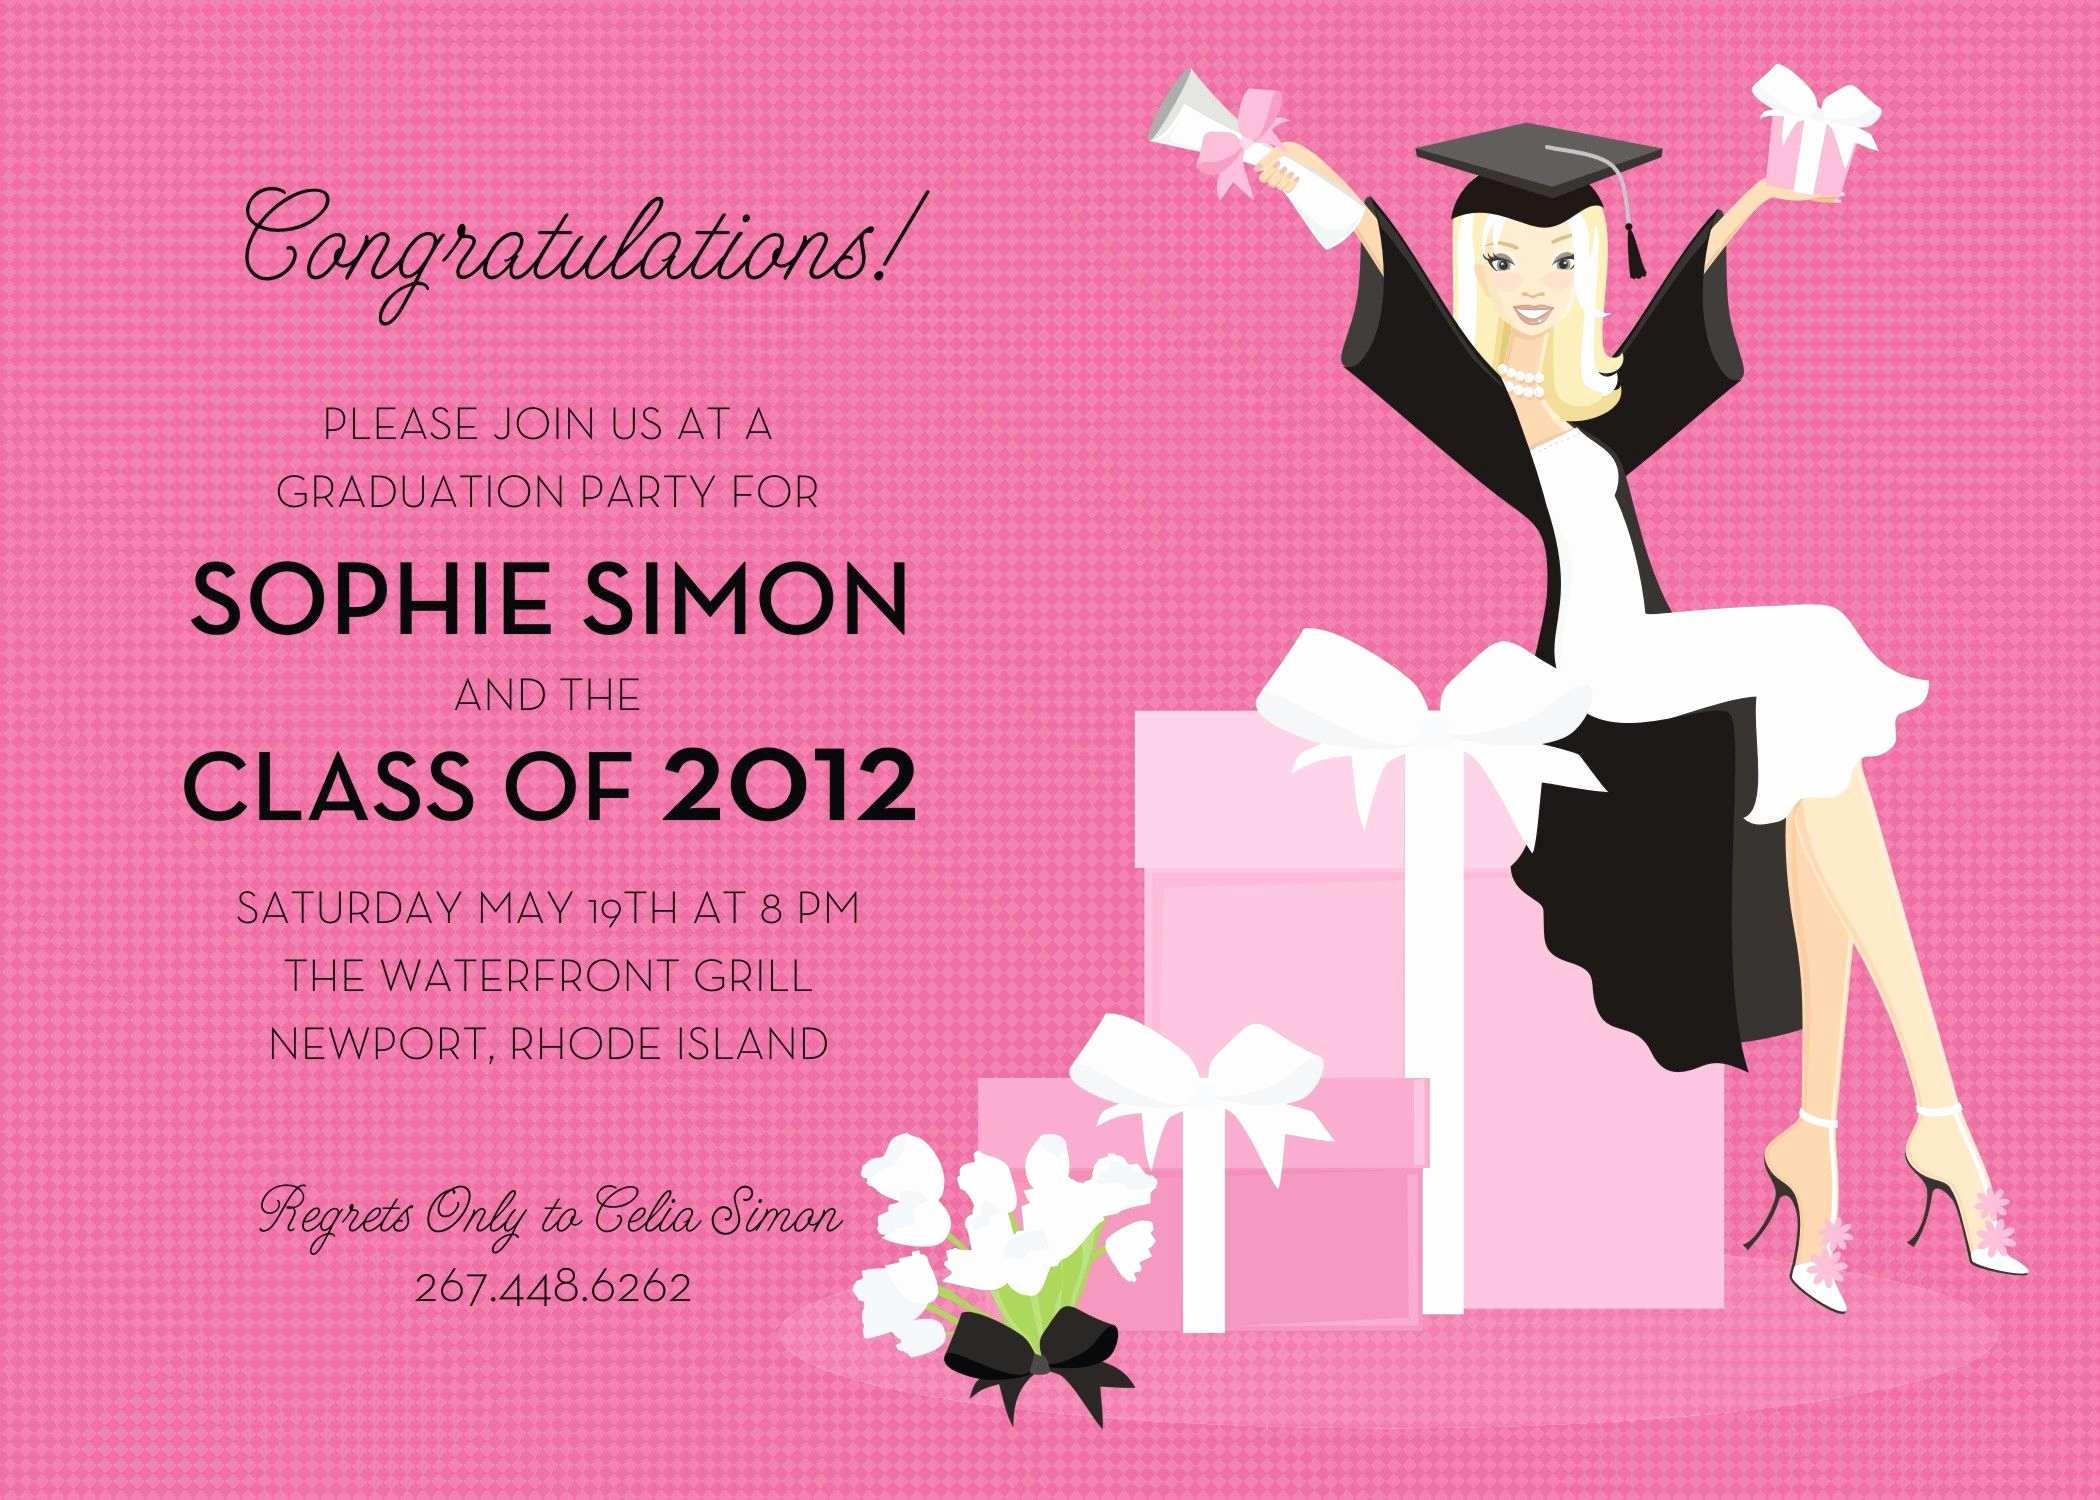 Graduation Party Invitation Text Fresh This Invitation Features A Stylish Grad Girl Sitting On A